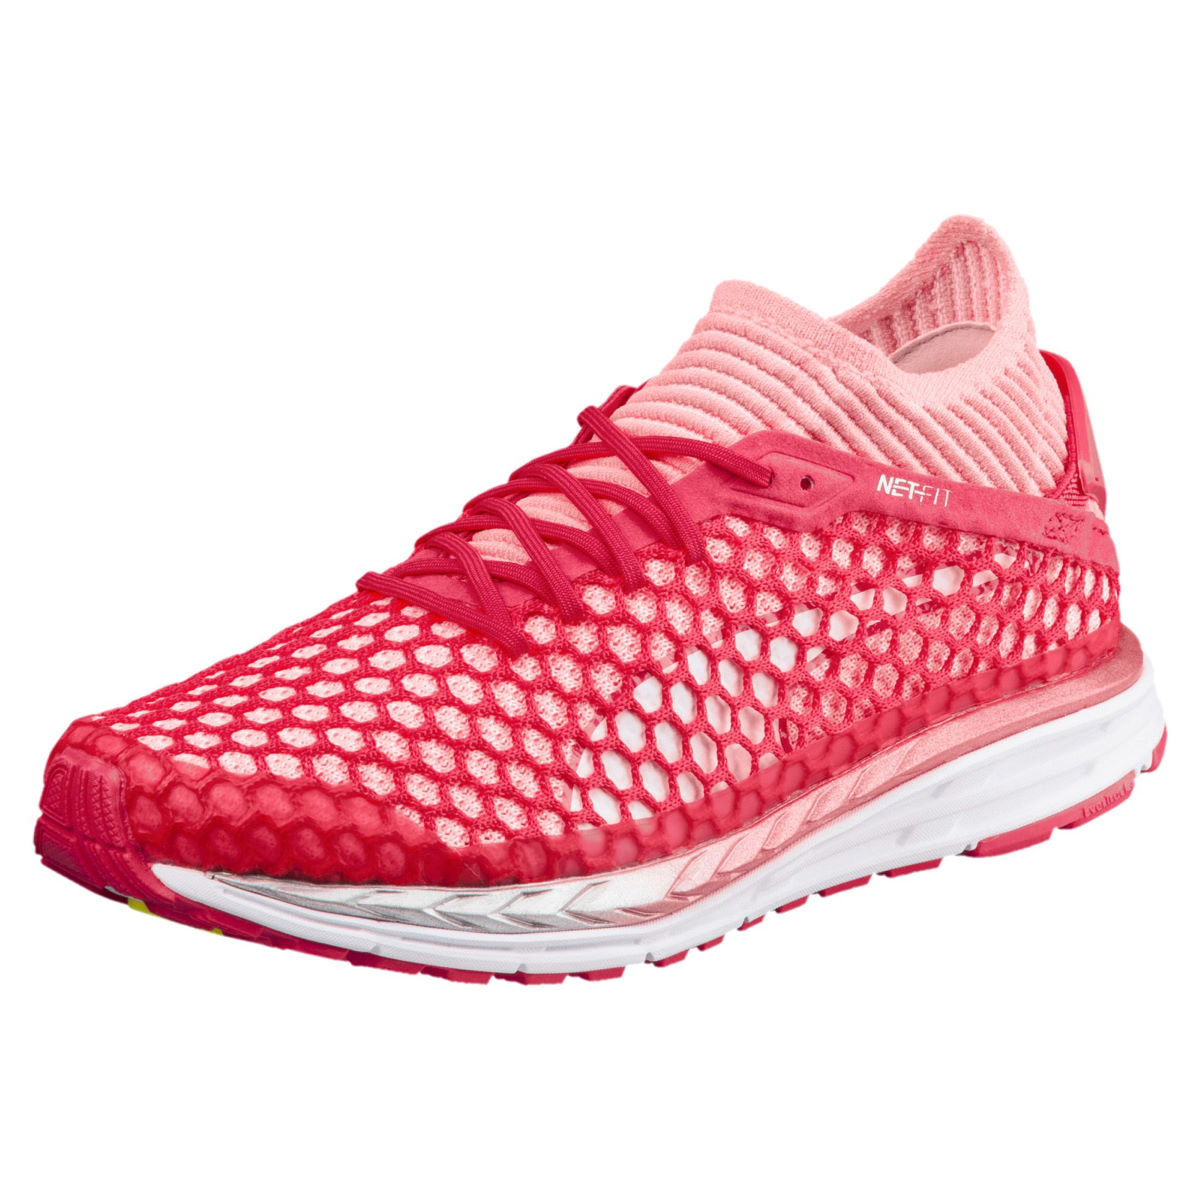 Chaussures Femme Puma Speed Ignite Netfit 2 - UK 4 pink-peach-white